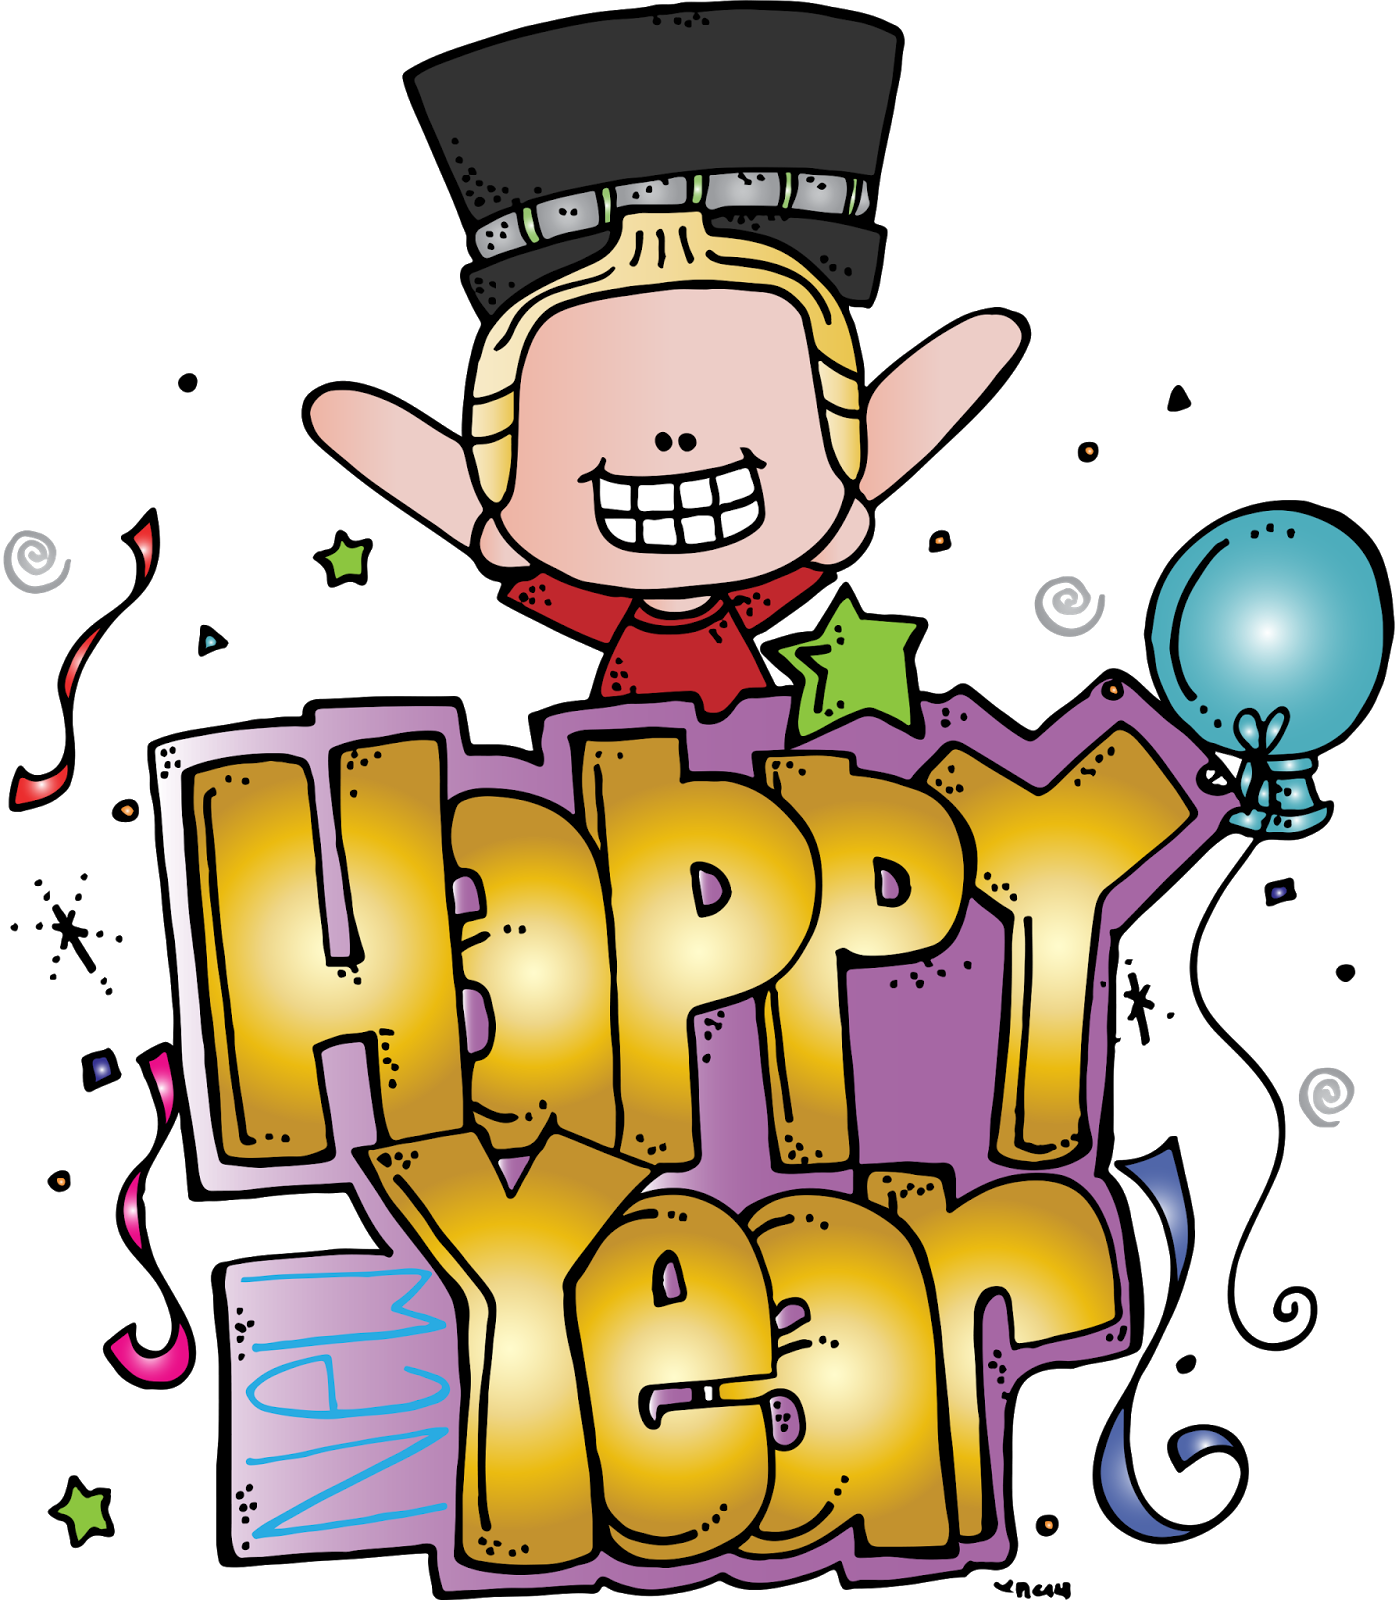 image free Melonheadz illustrating happy new. Therapy clipart bilingual education